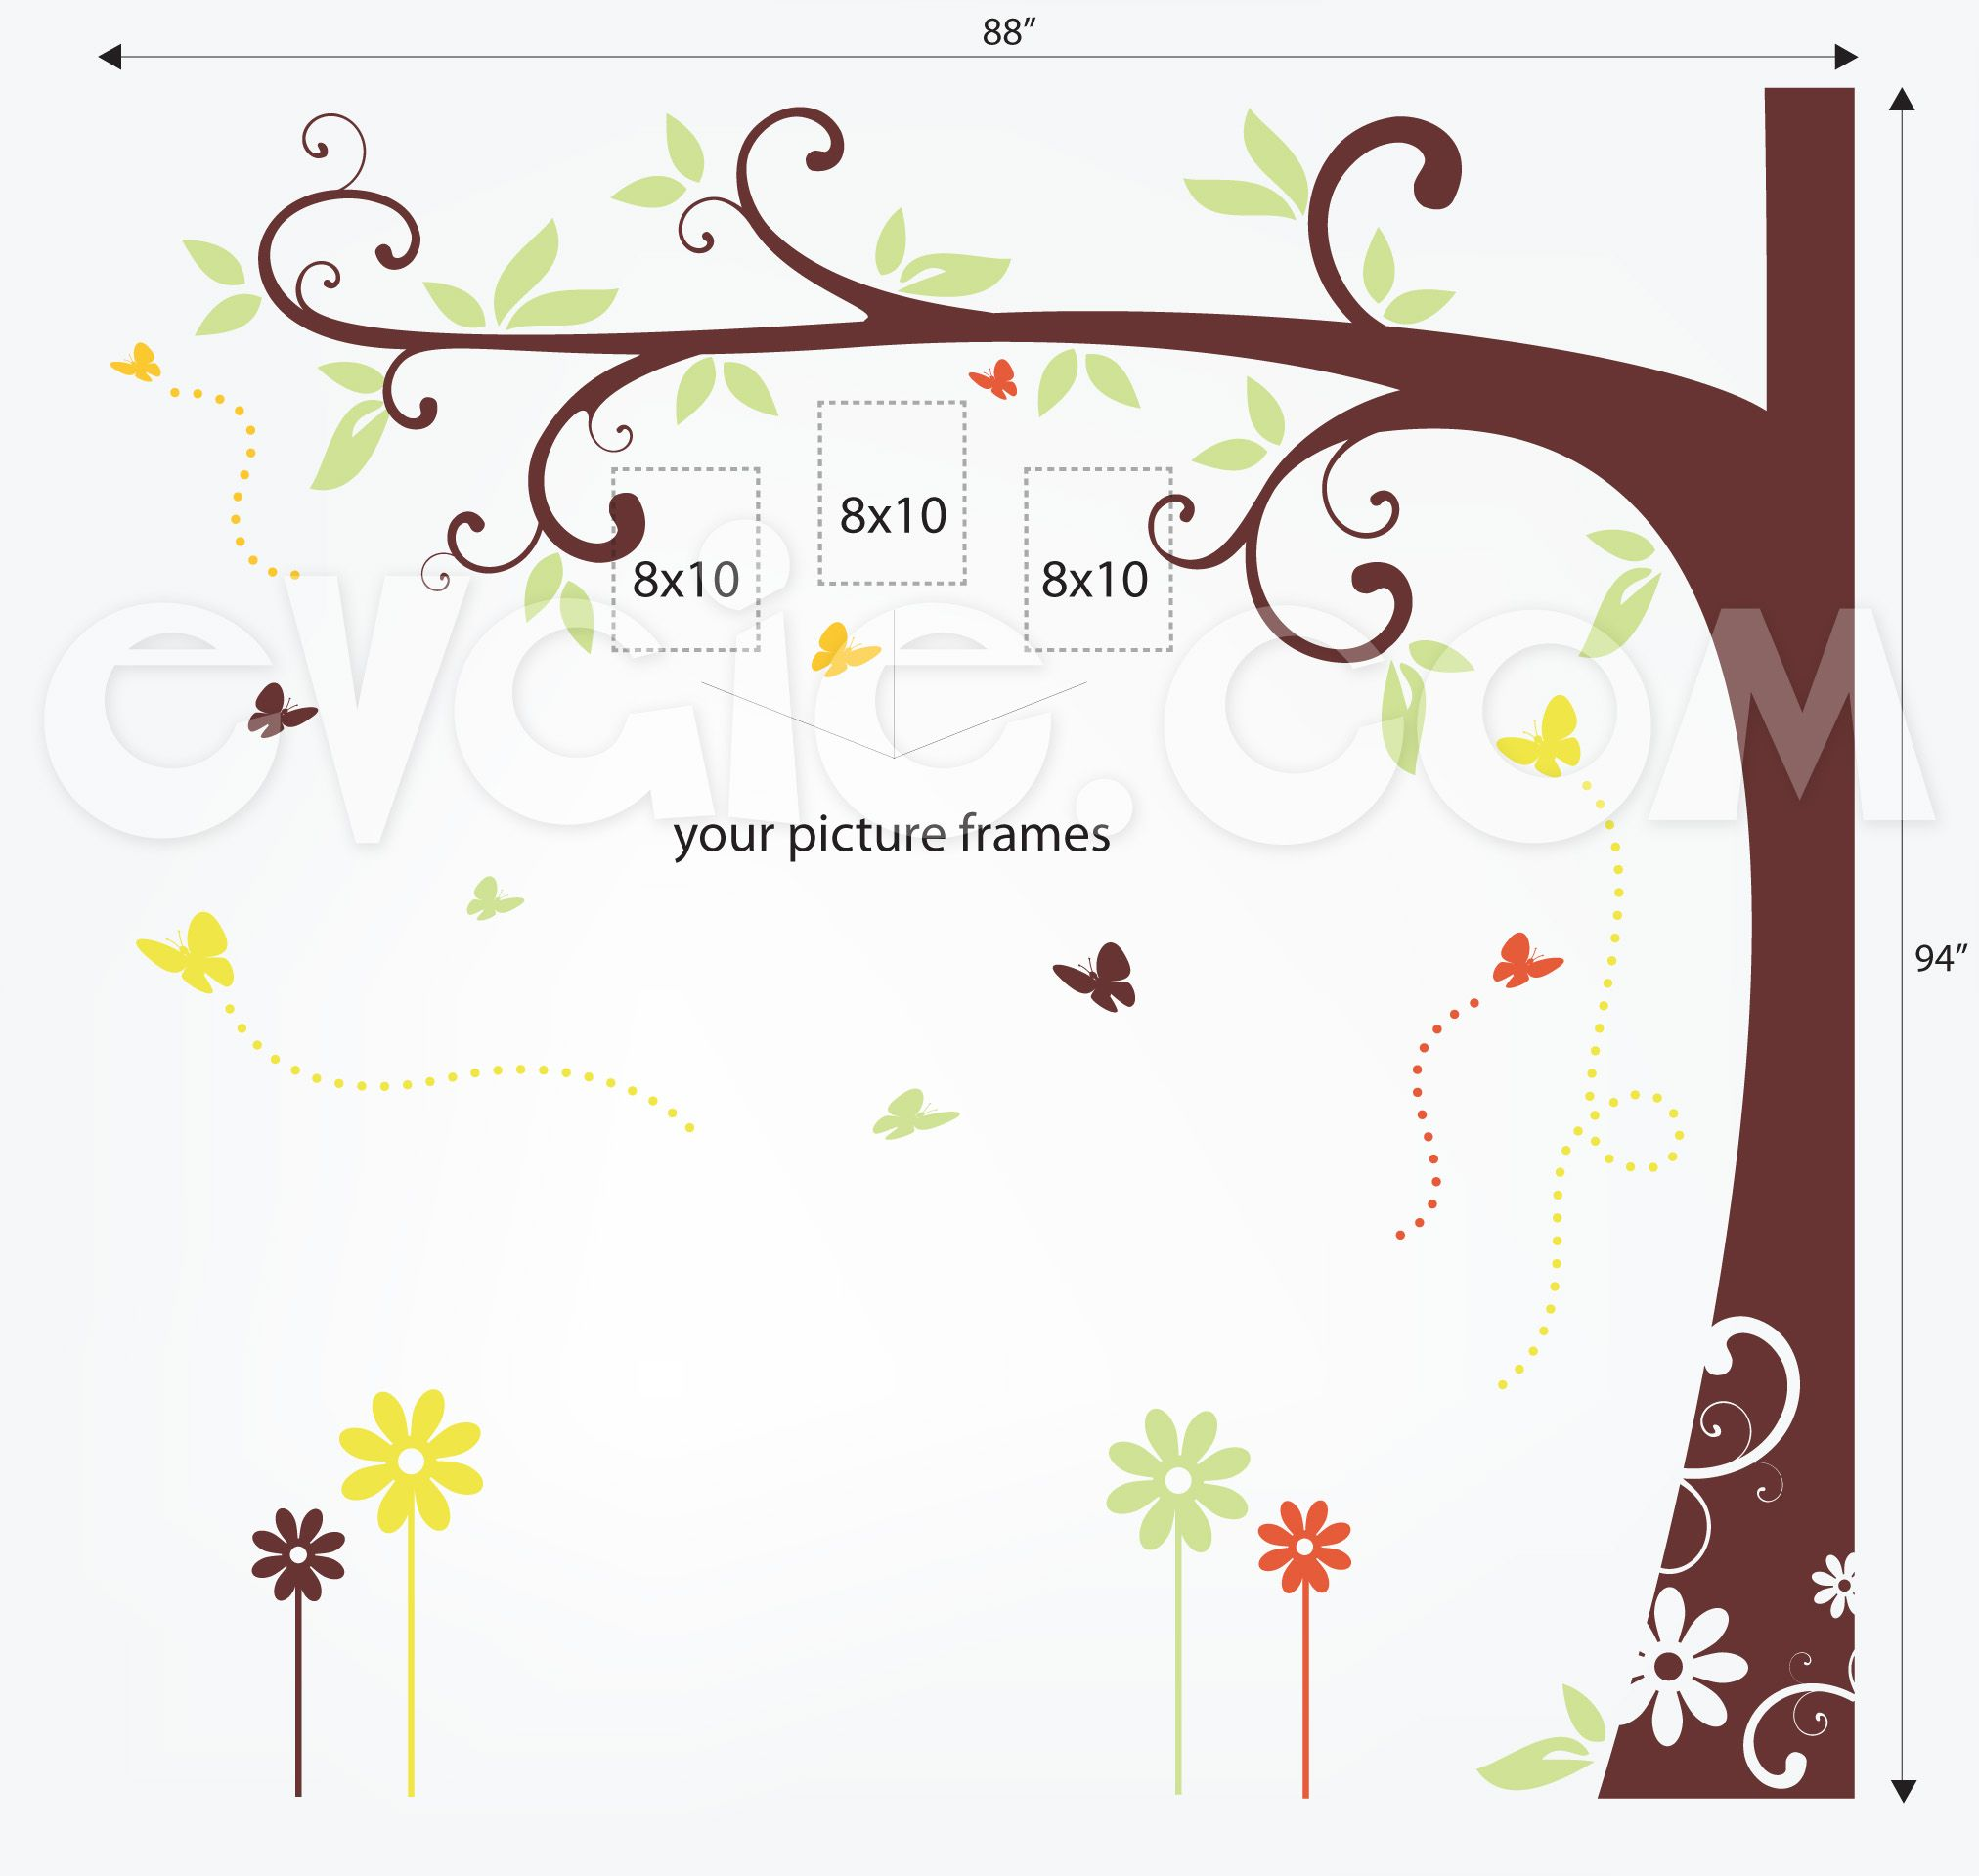 Family Tree Wall Decal For Picture Frames EvgieNev Church - Wall decals for church nursery